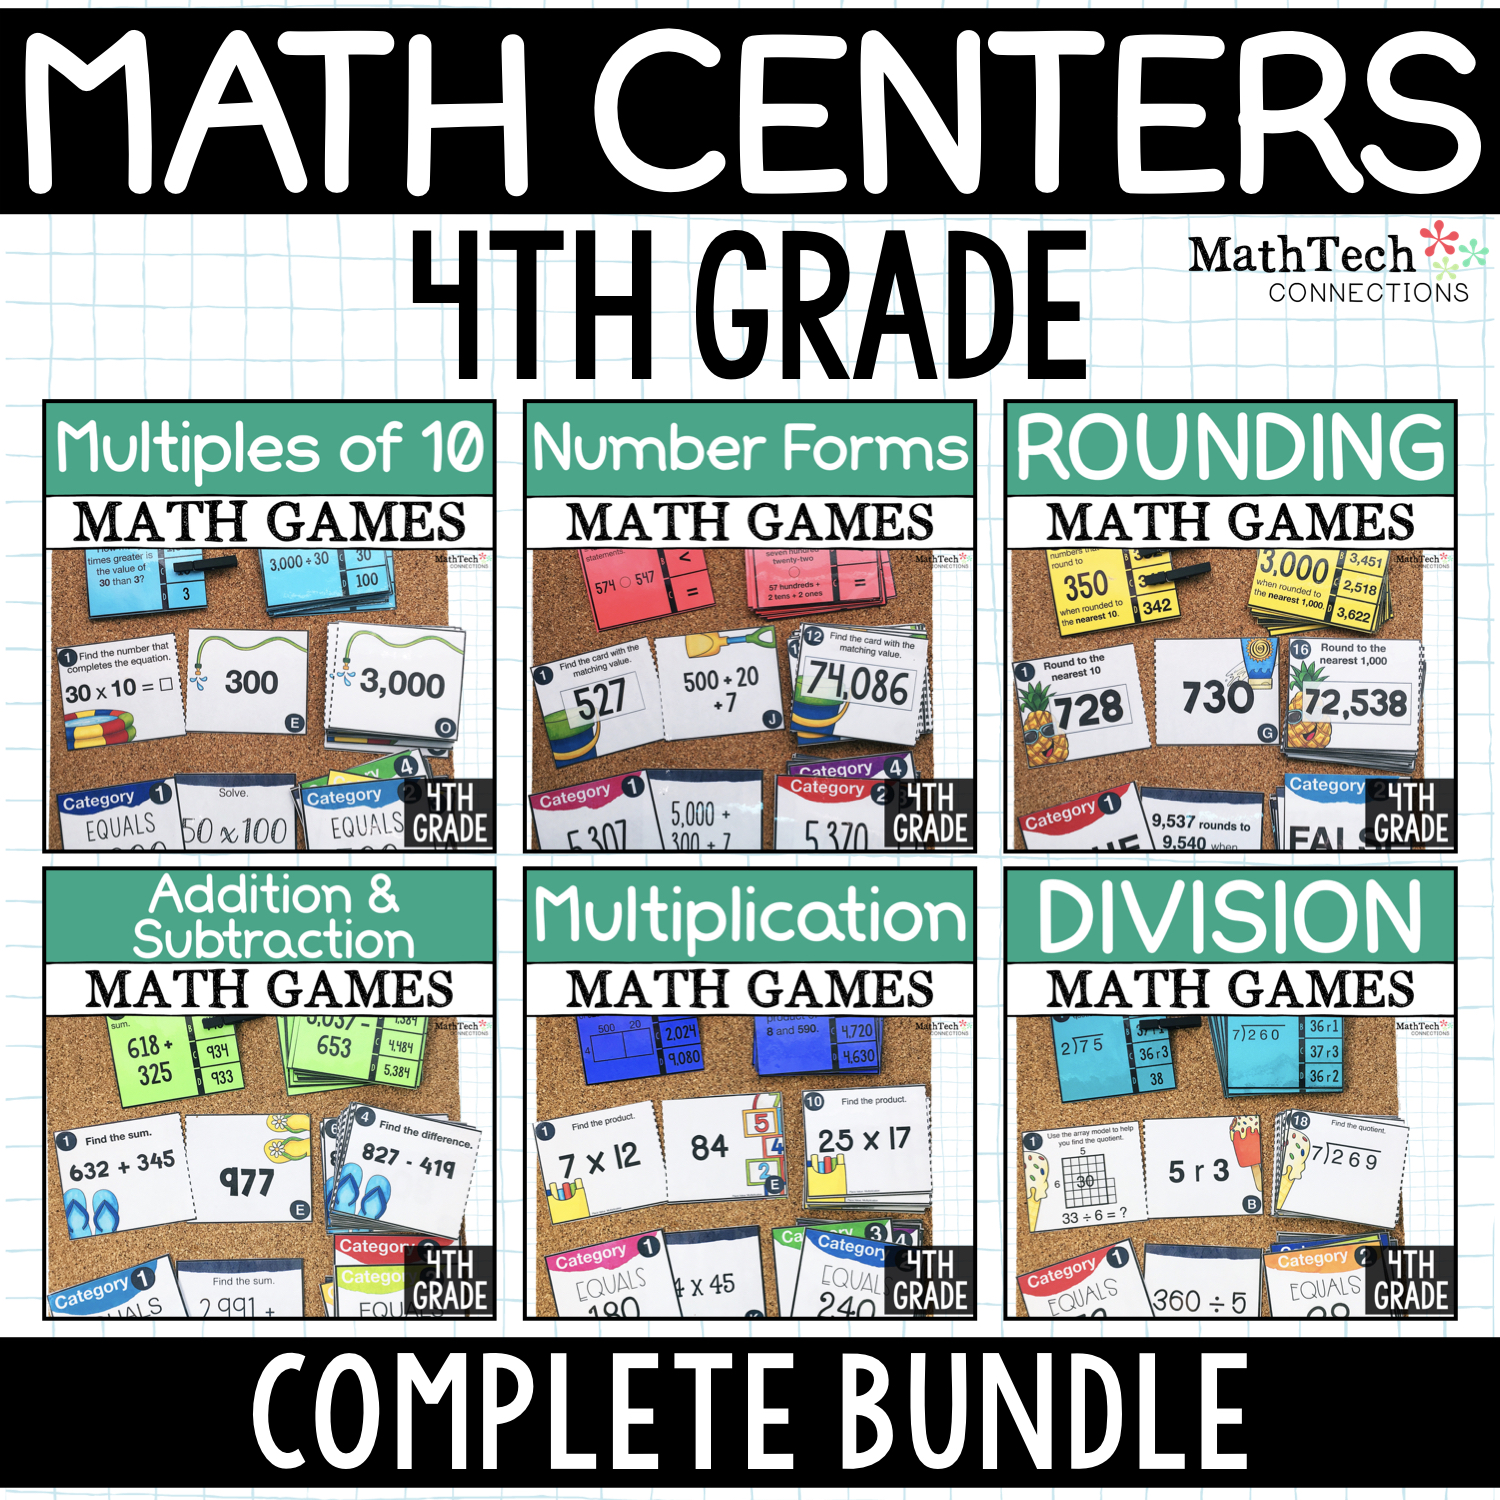 4th Grade Math Centers for Math Workshop - Three math activities for fourth grade math centers